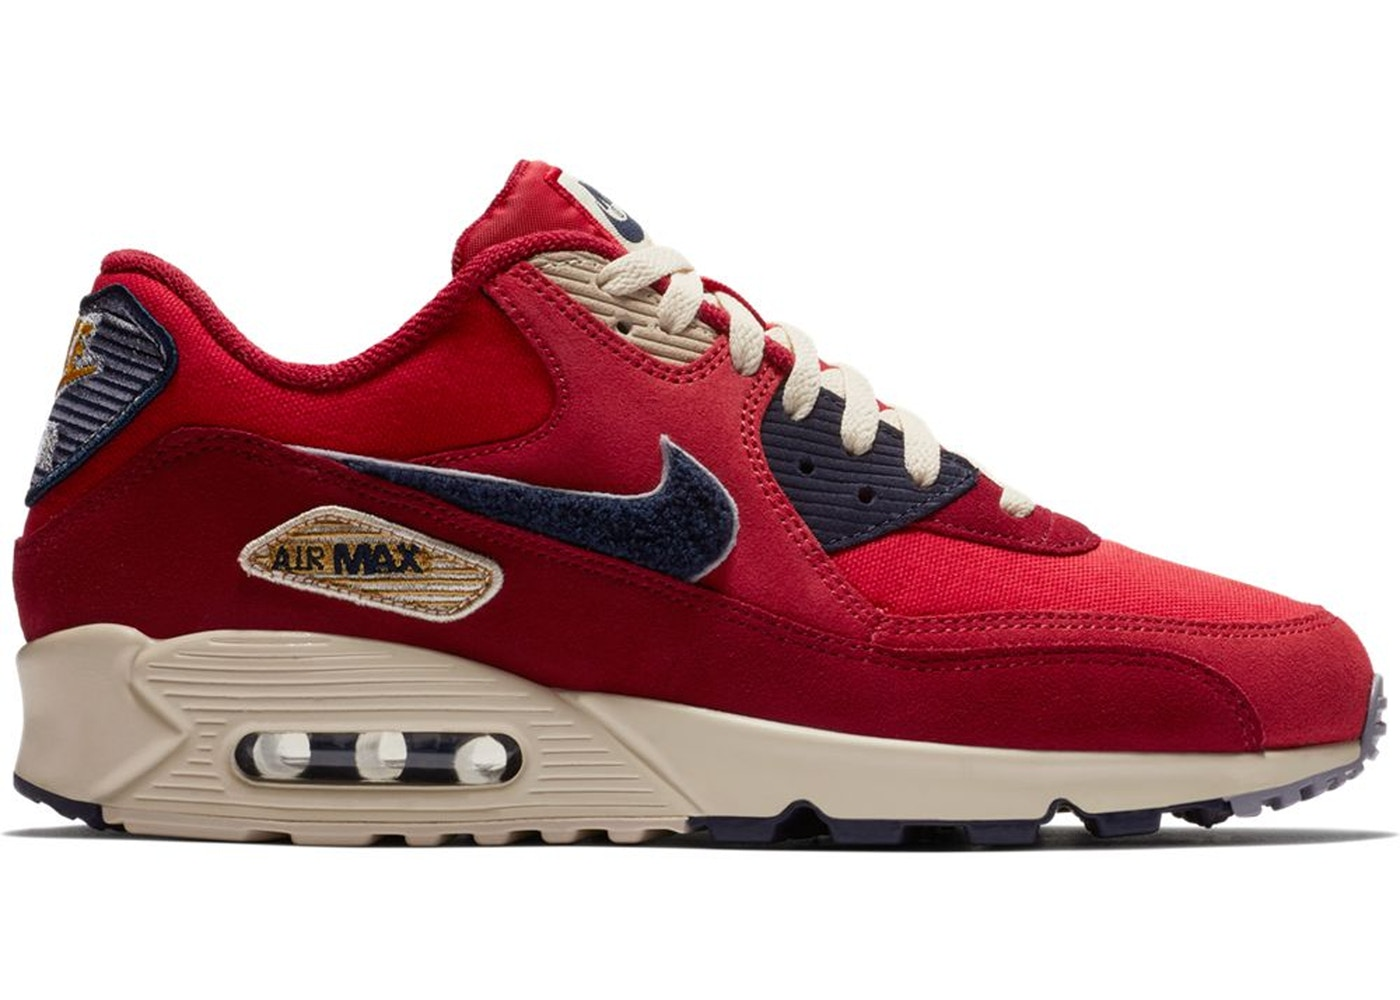 853fdd63 Air Max 90 Varsity Pack University Red - 858954-600